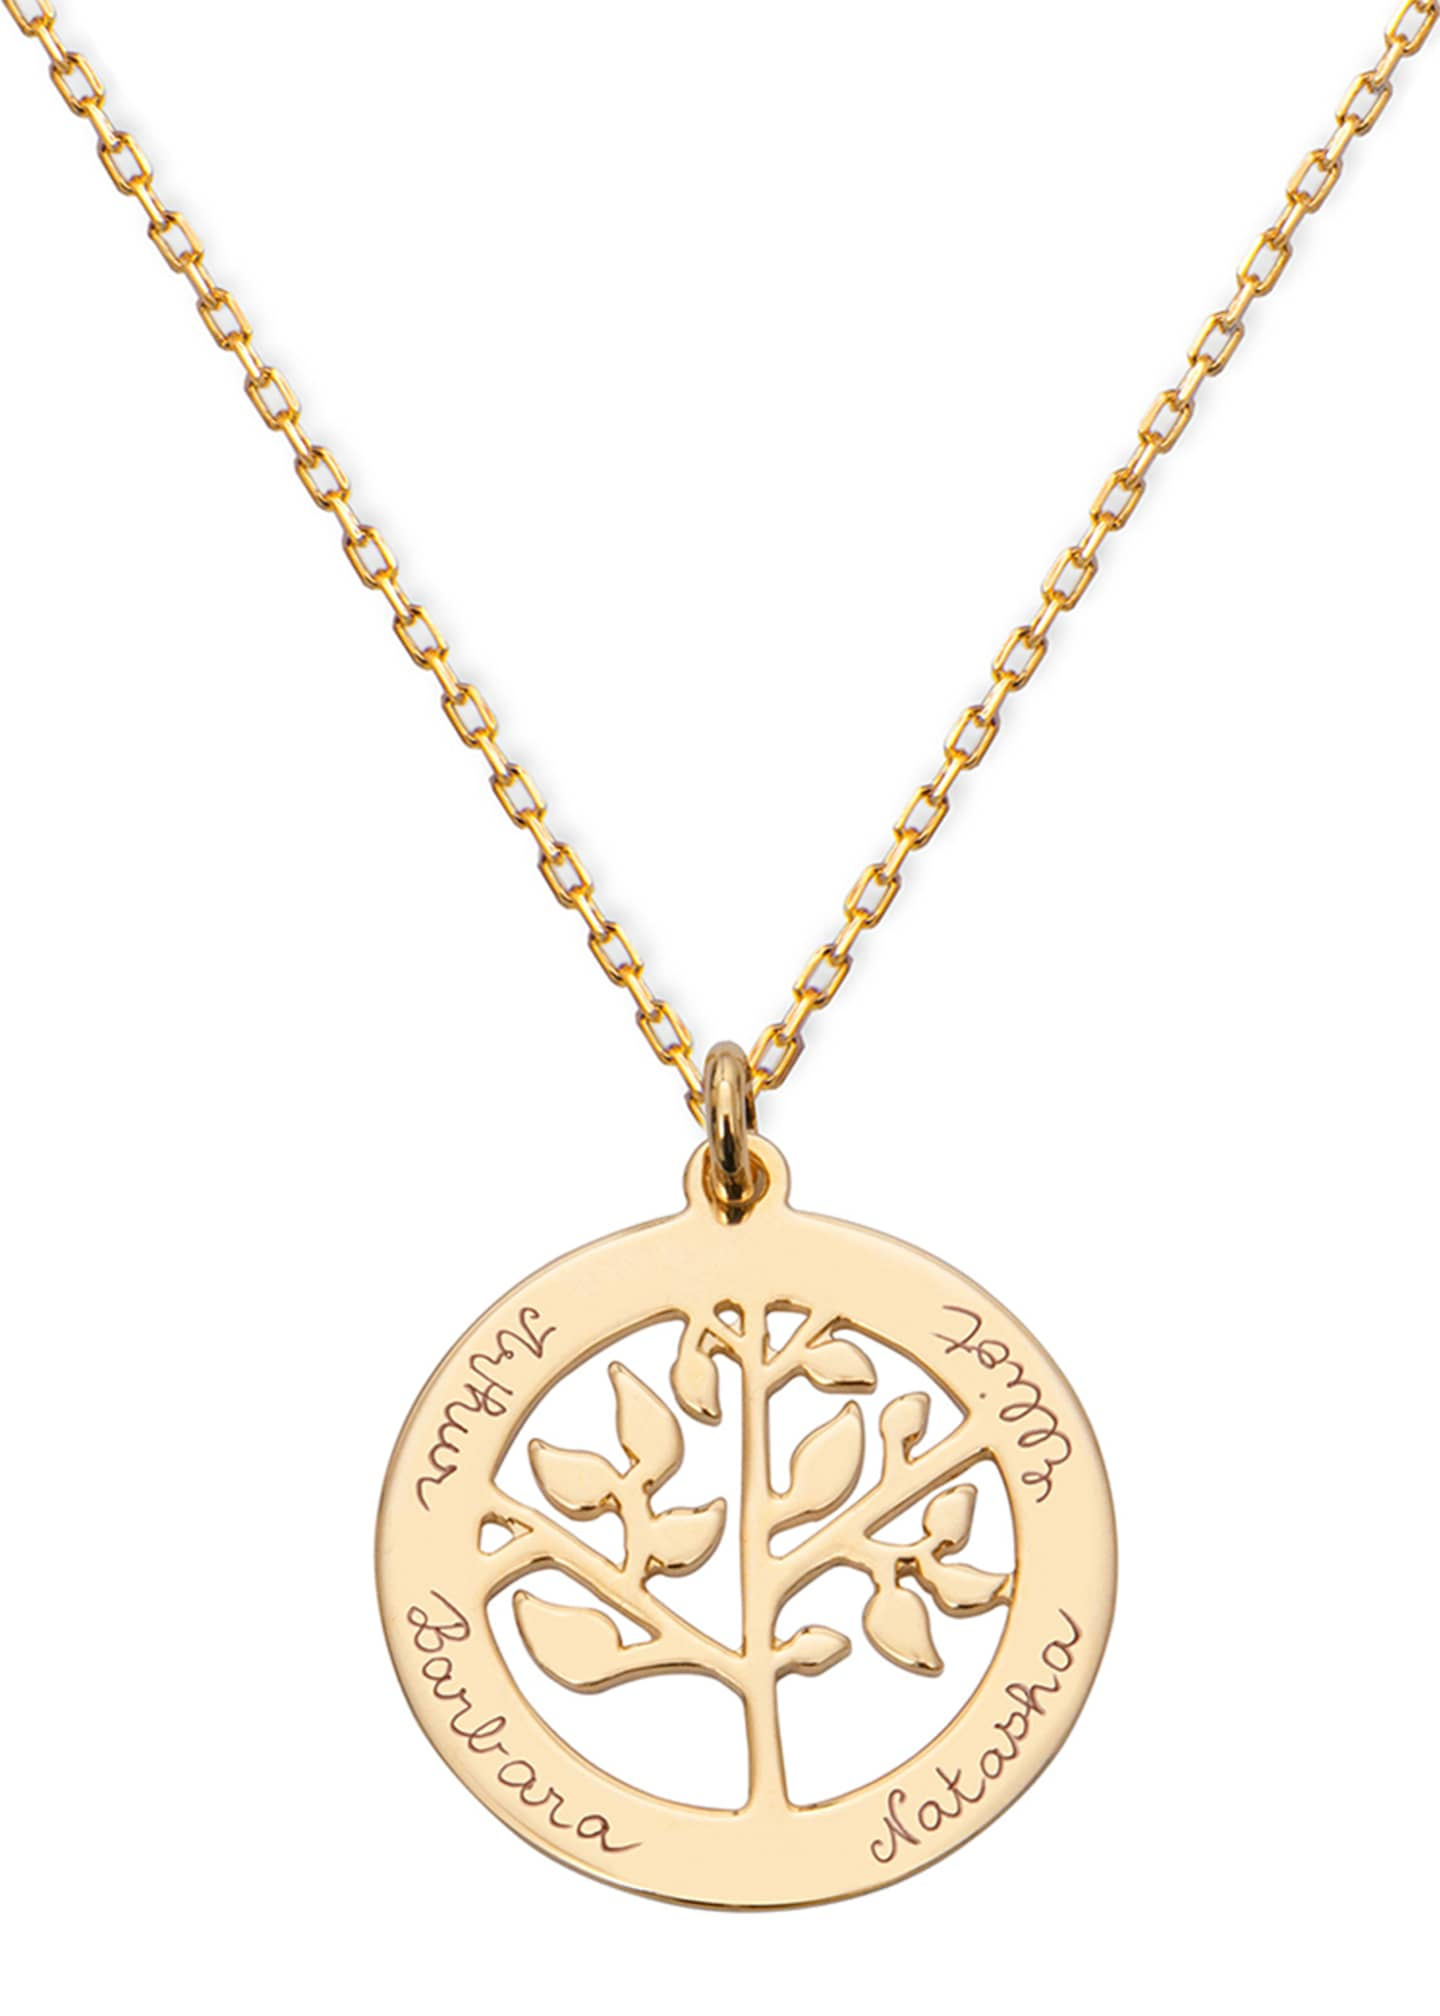 Merci Maman Personalized Tree of Life Necklace